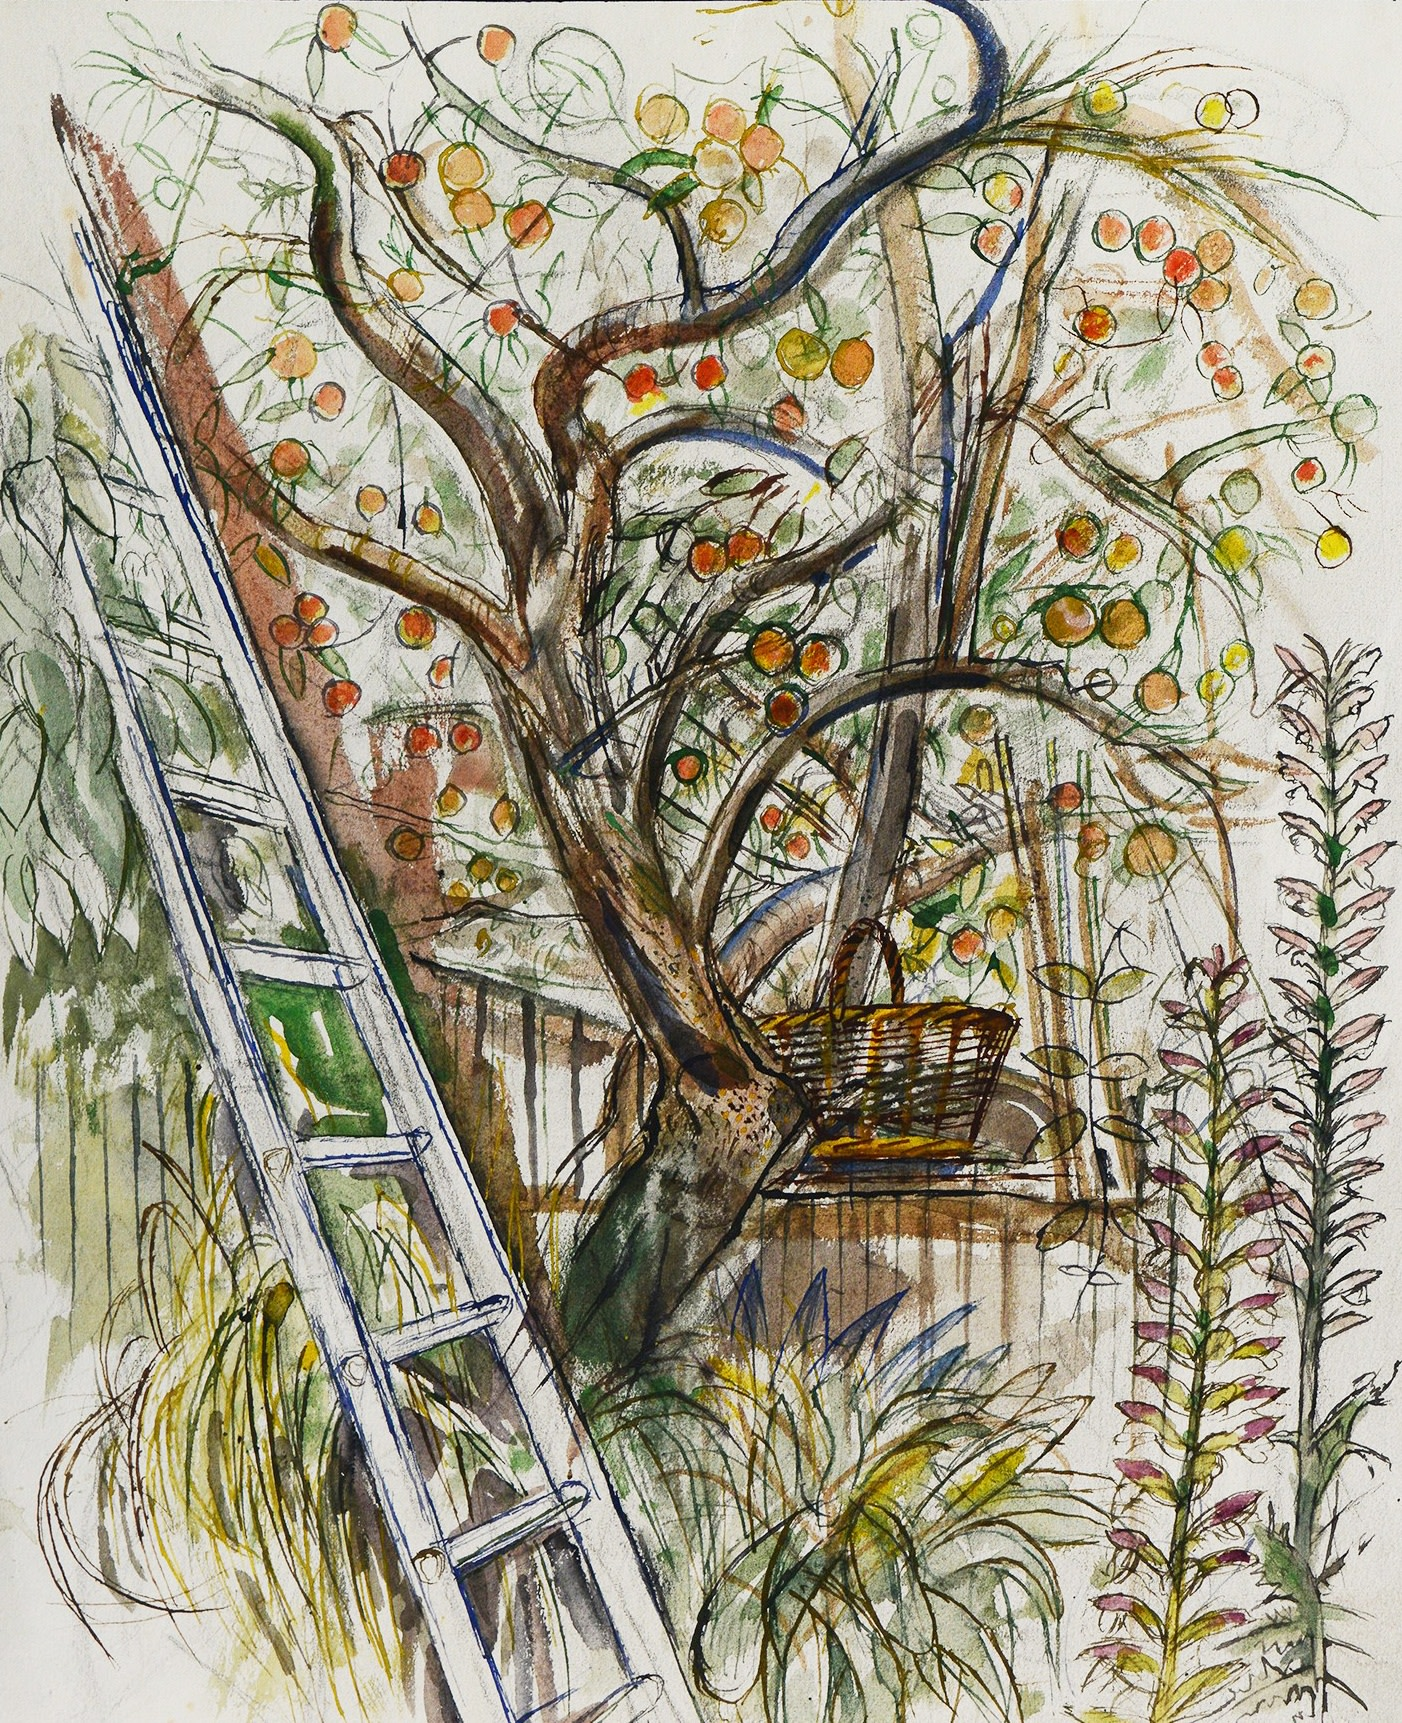 <span class=&#34;link fancybox-details-link&#34;><a href=&#34;/artists/38-richard-bawden/works/10514-richard-bawden-apple-picking/&#34;>View Detail Page</a></span><div class=&#34;artist&#34;><span class=&#34;artist&#34;><strong>Richard Bawden</strong></span></div>